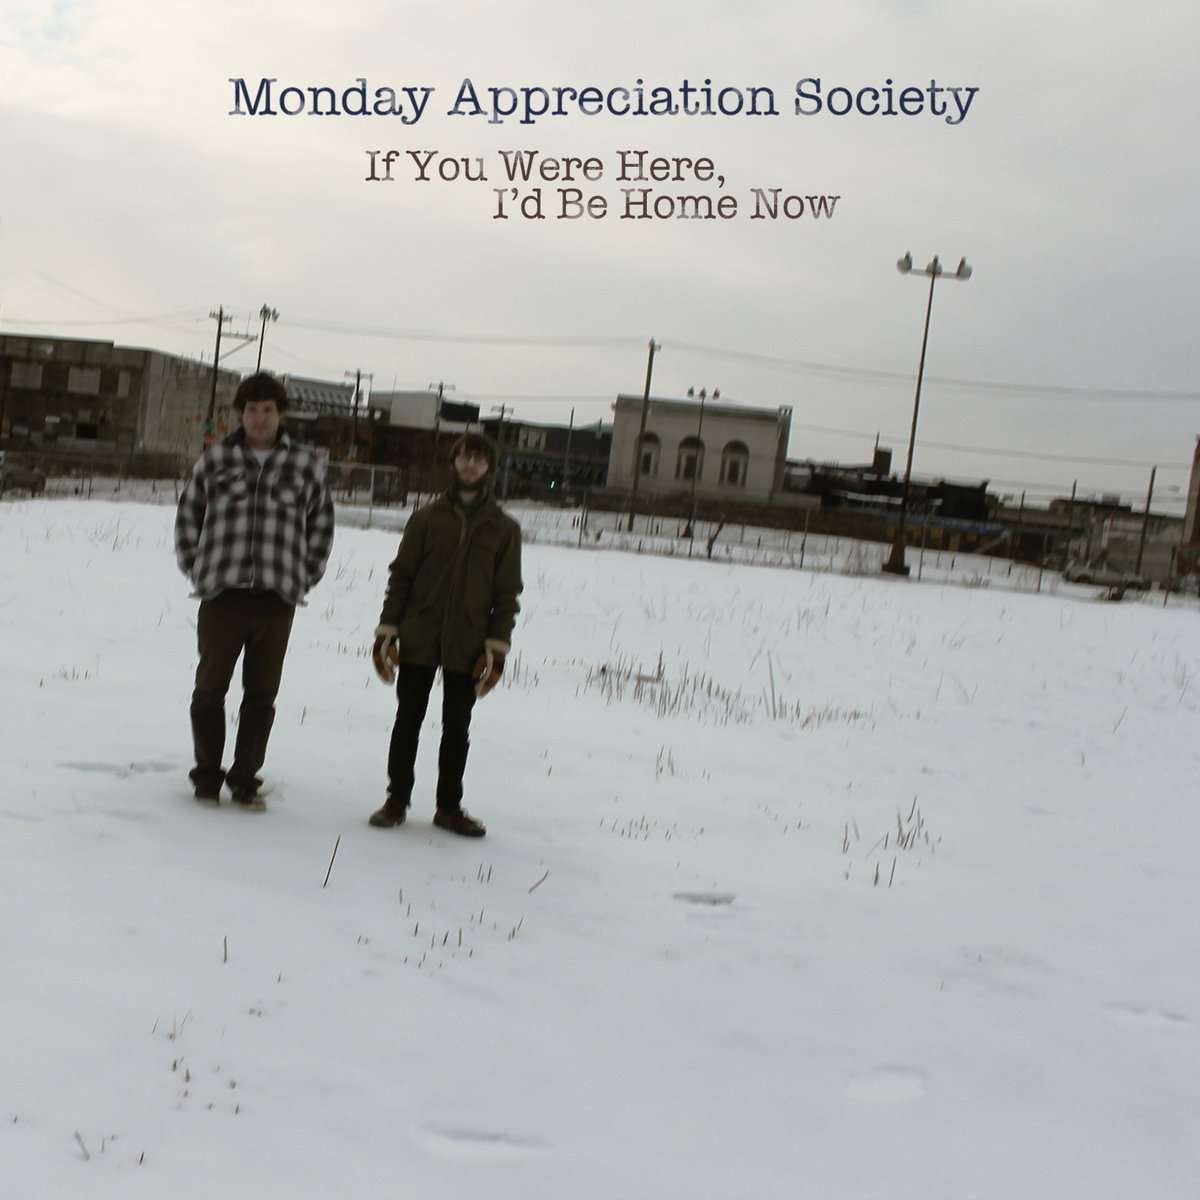 If You Were Here, I'd Be Home Now – Monday Appreciation Society.